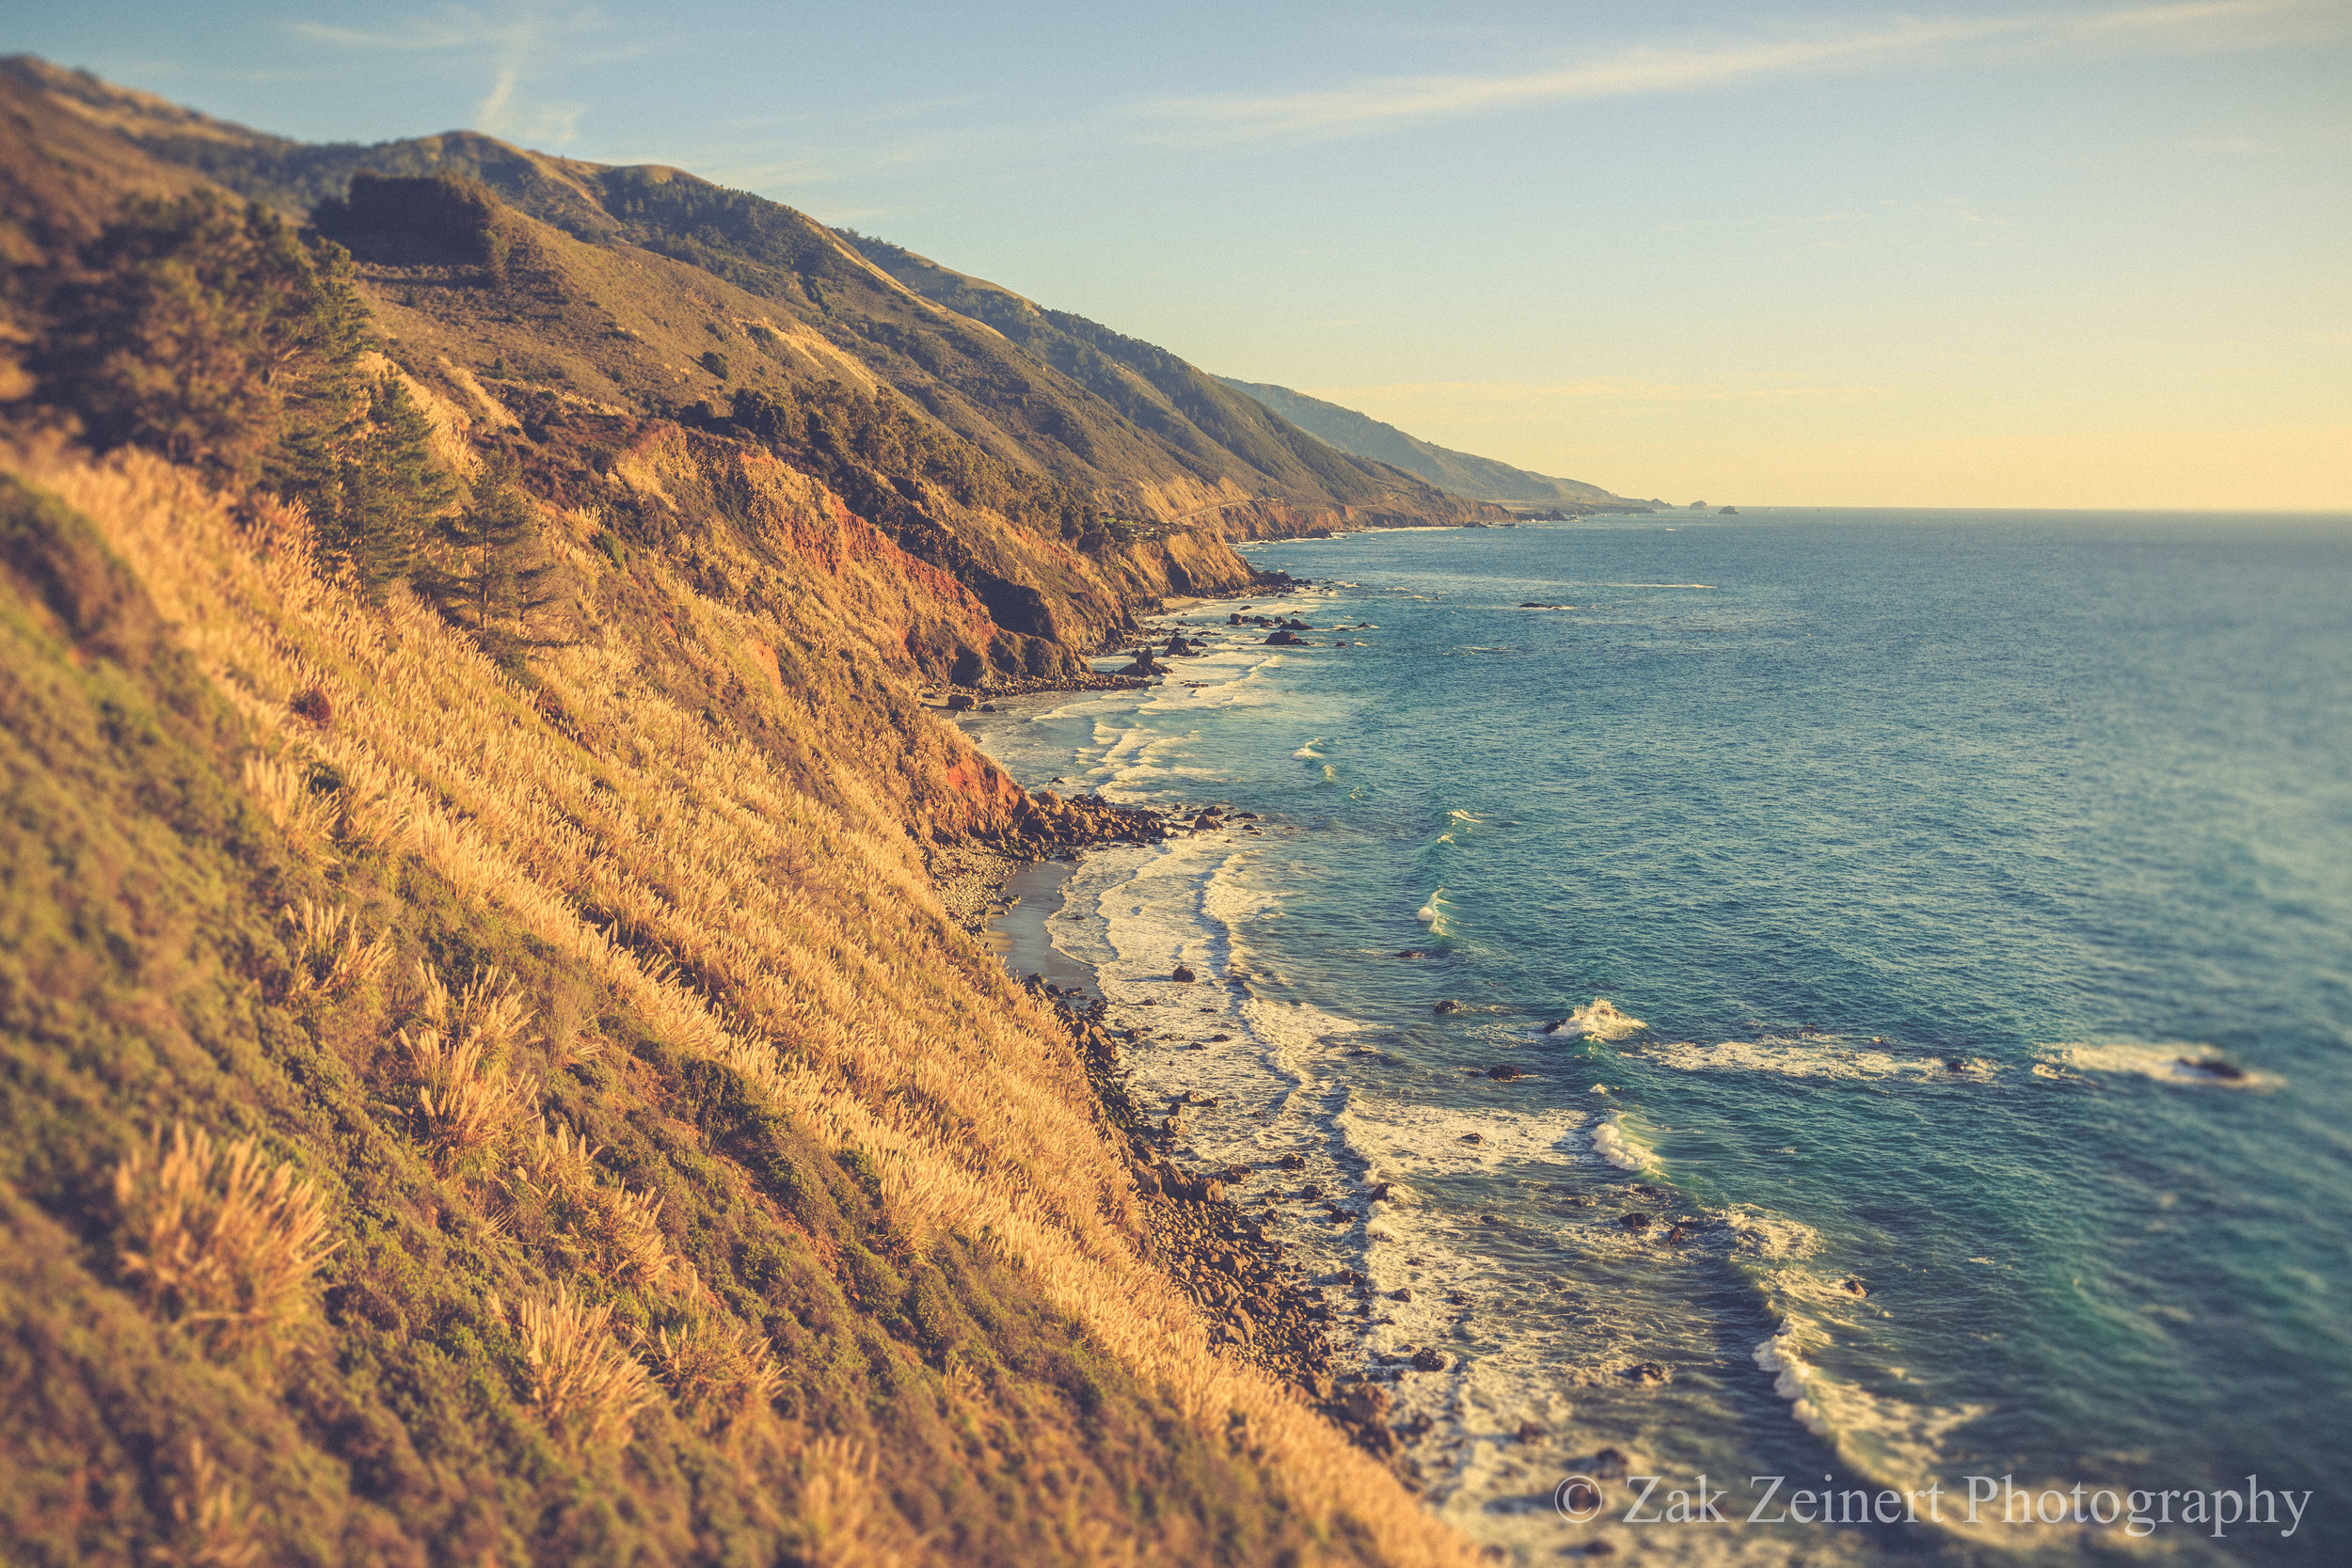 Big Sur as seen from the Pacific Coast Highway